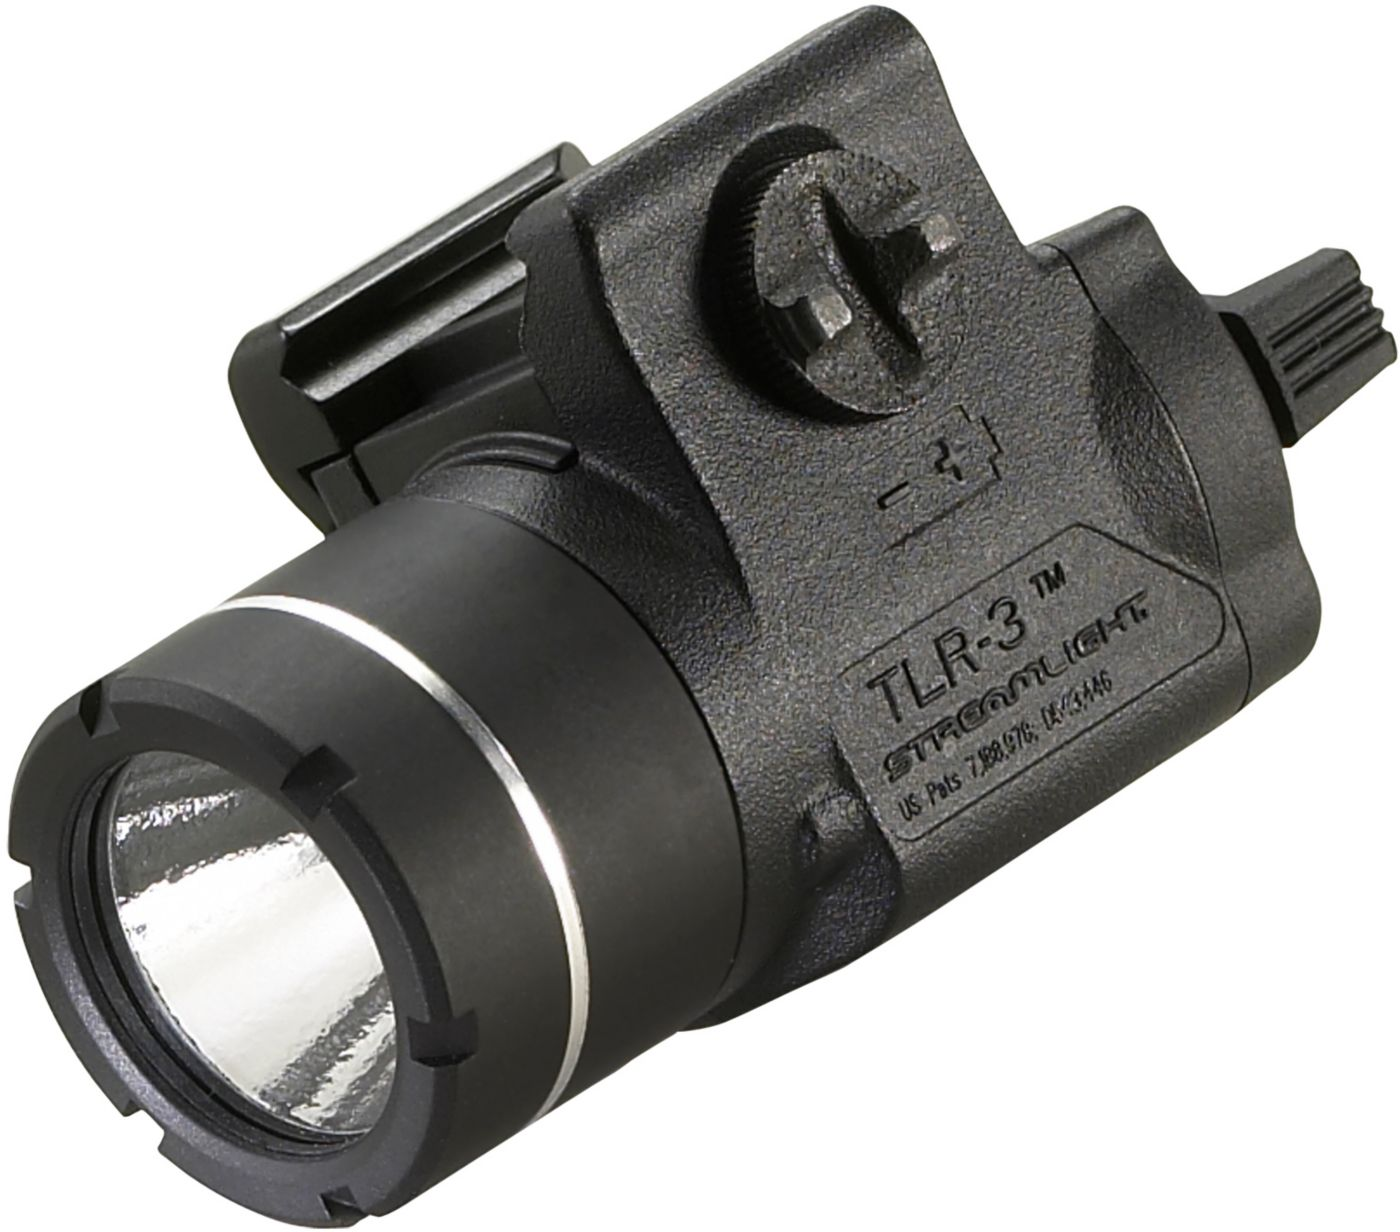 Streamlight TLR-3 Gun Mounted Light